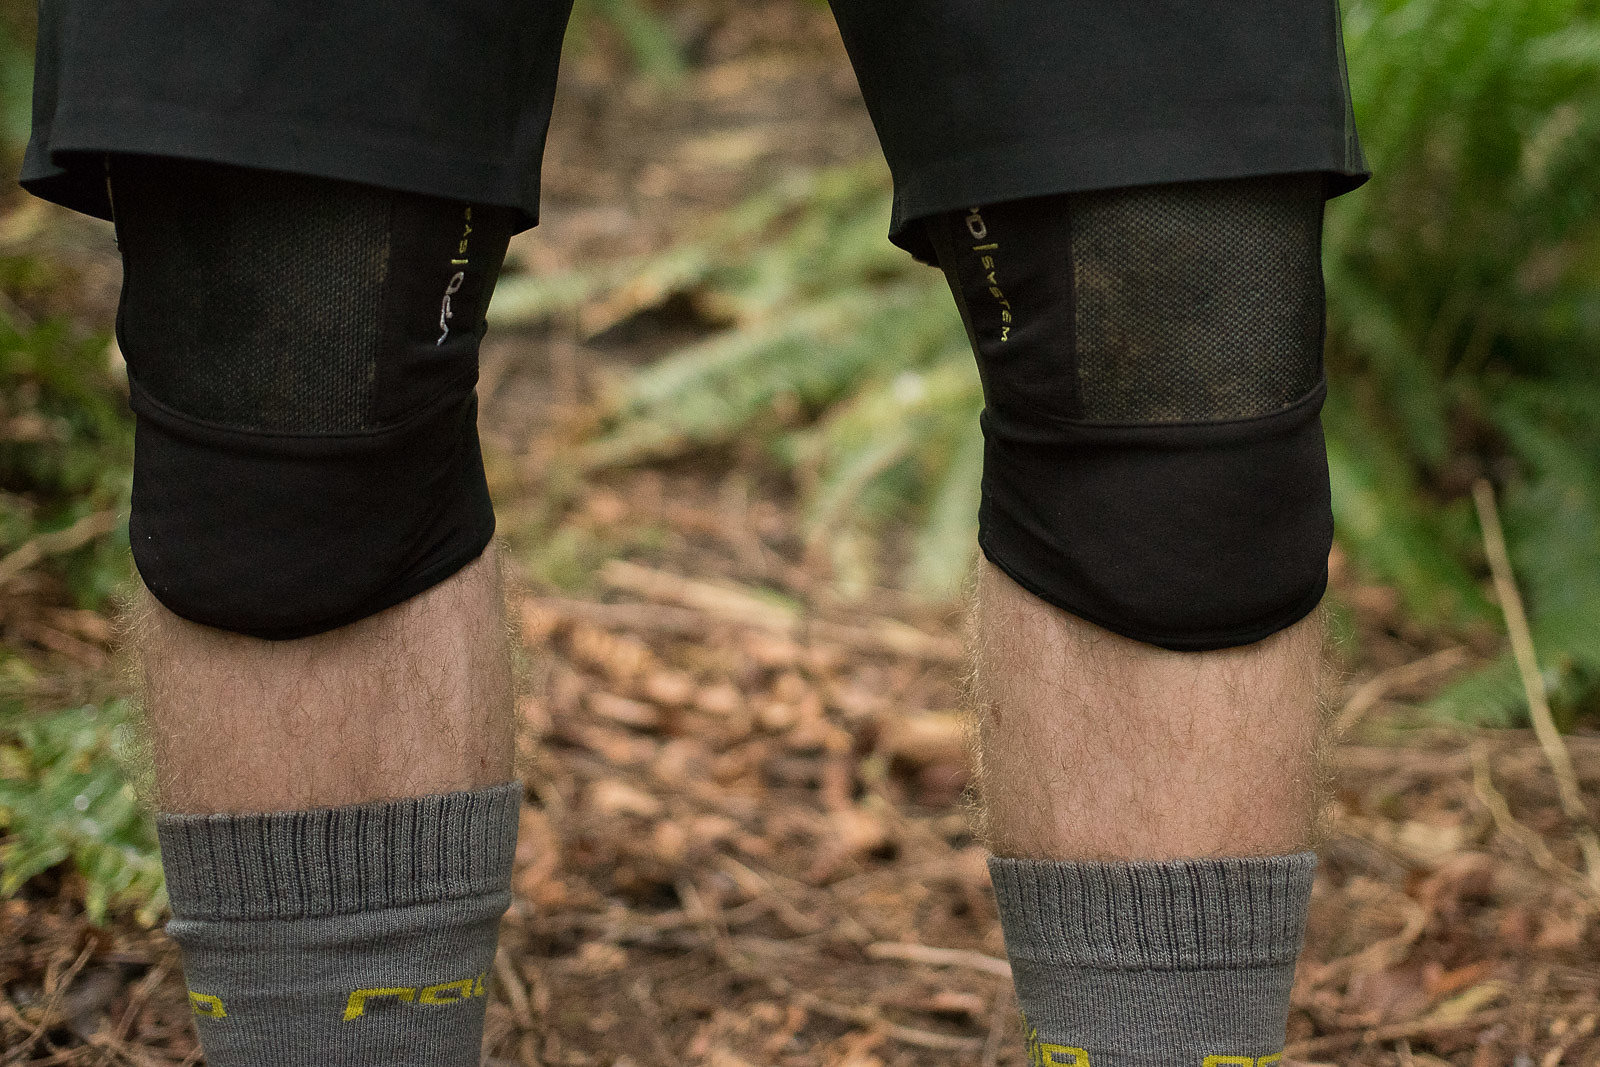 Poc Joint Vpd System Knee Pads Accessory Review Freehub